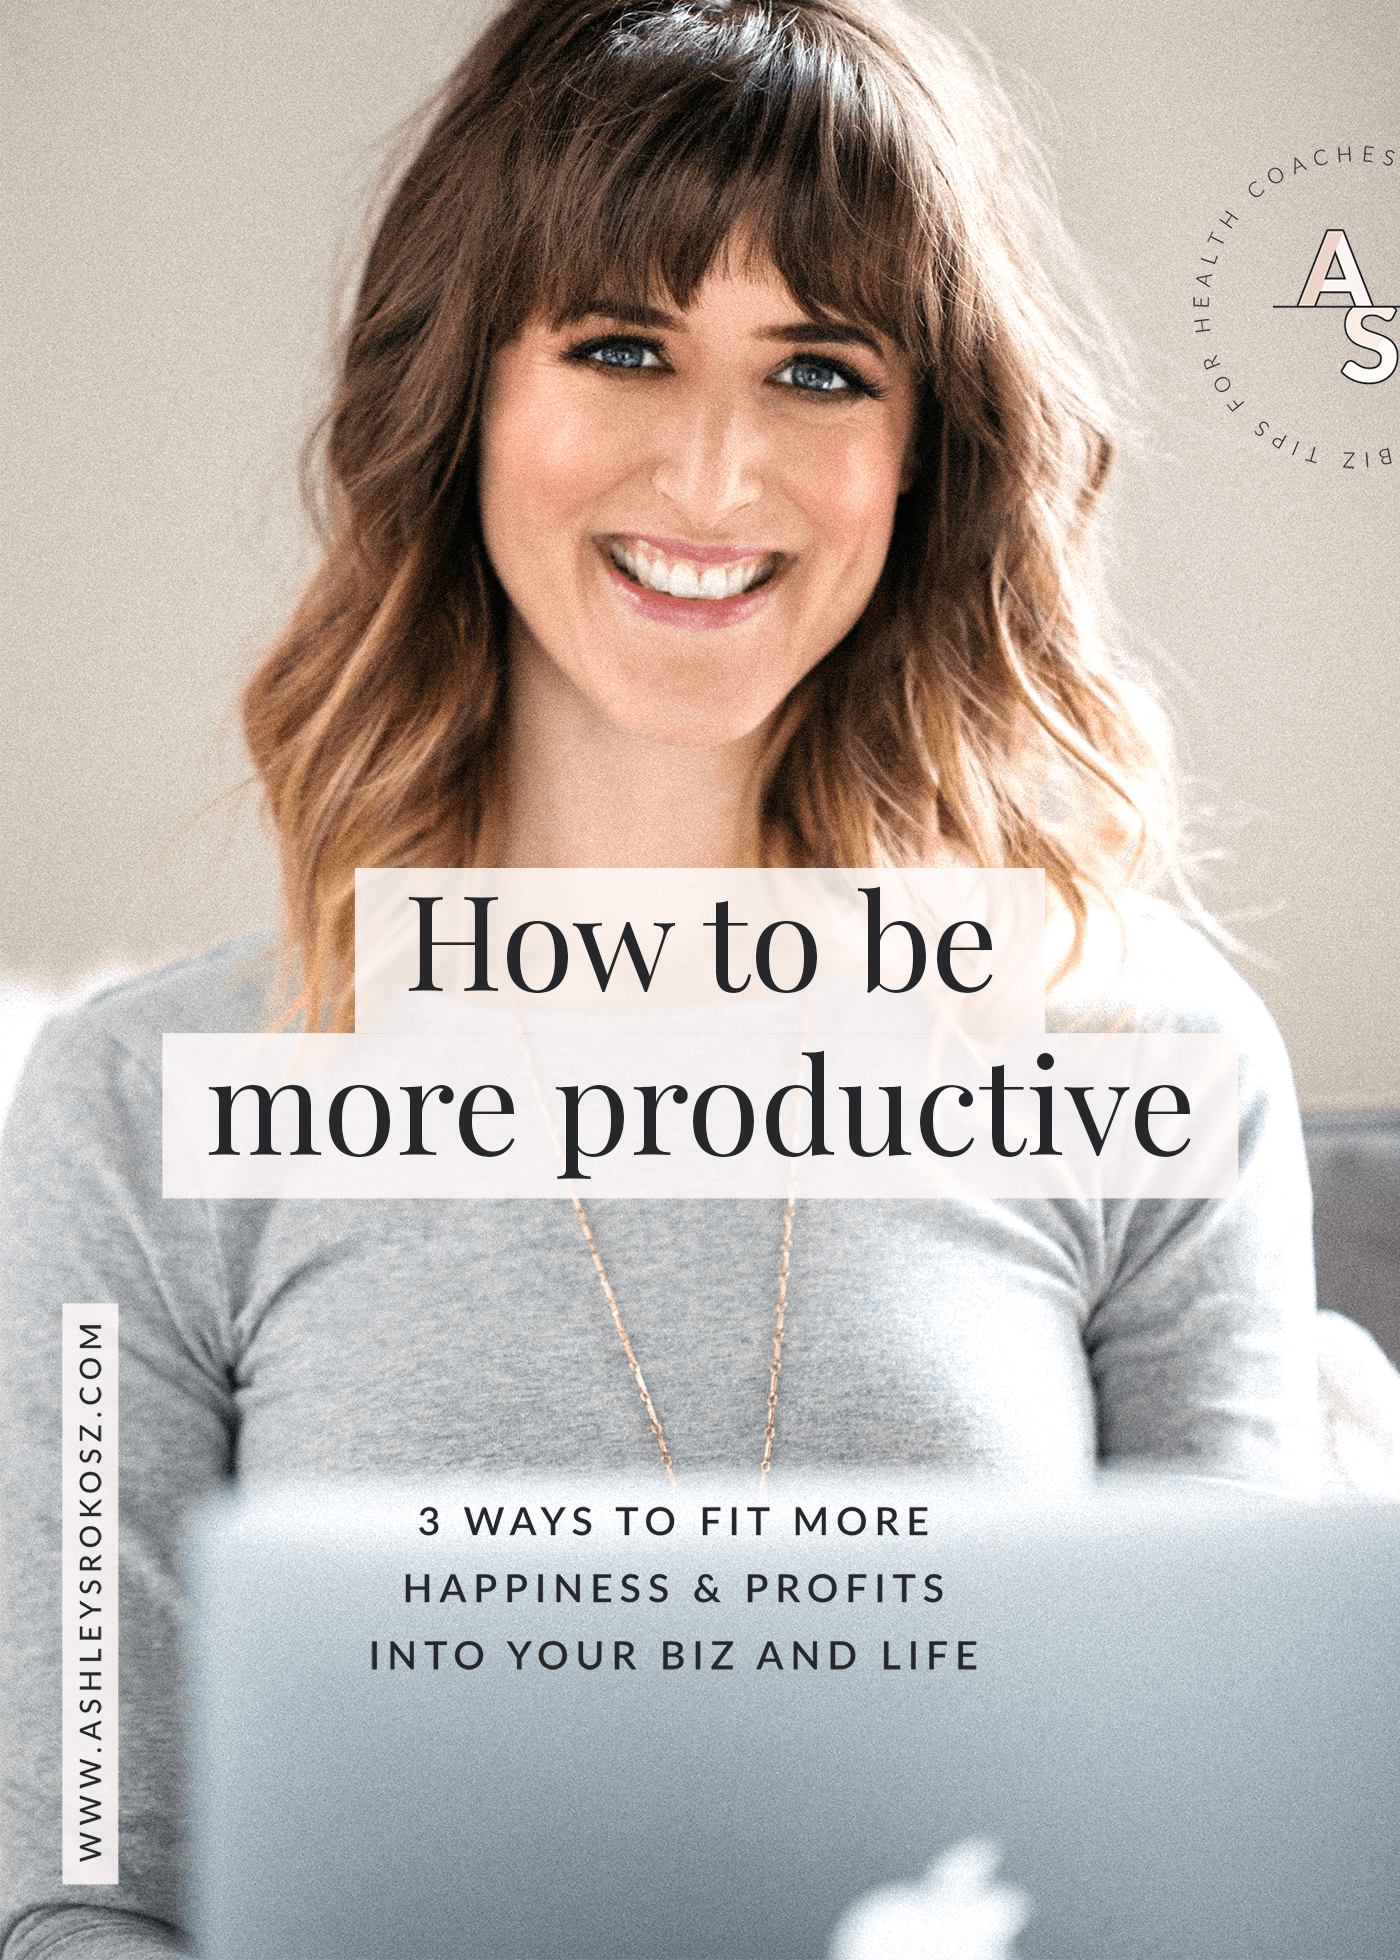 How do you get stuff done when your schedule is jam-packed? Does it seem like there's never enough time to do the things you WANT to do? Newsflash: everyone is busy! Click to see 3 ways that you can be more productive and save time even when you're a busy holistic health business owner. This is perfect for holistic nutritionists, health coaches, essential oil business owners, or yoga teachers.